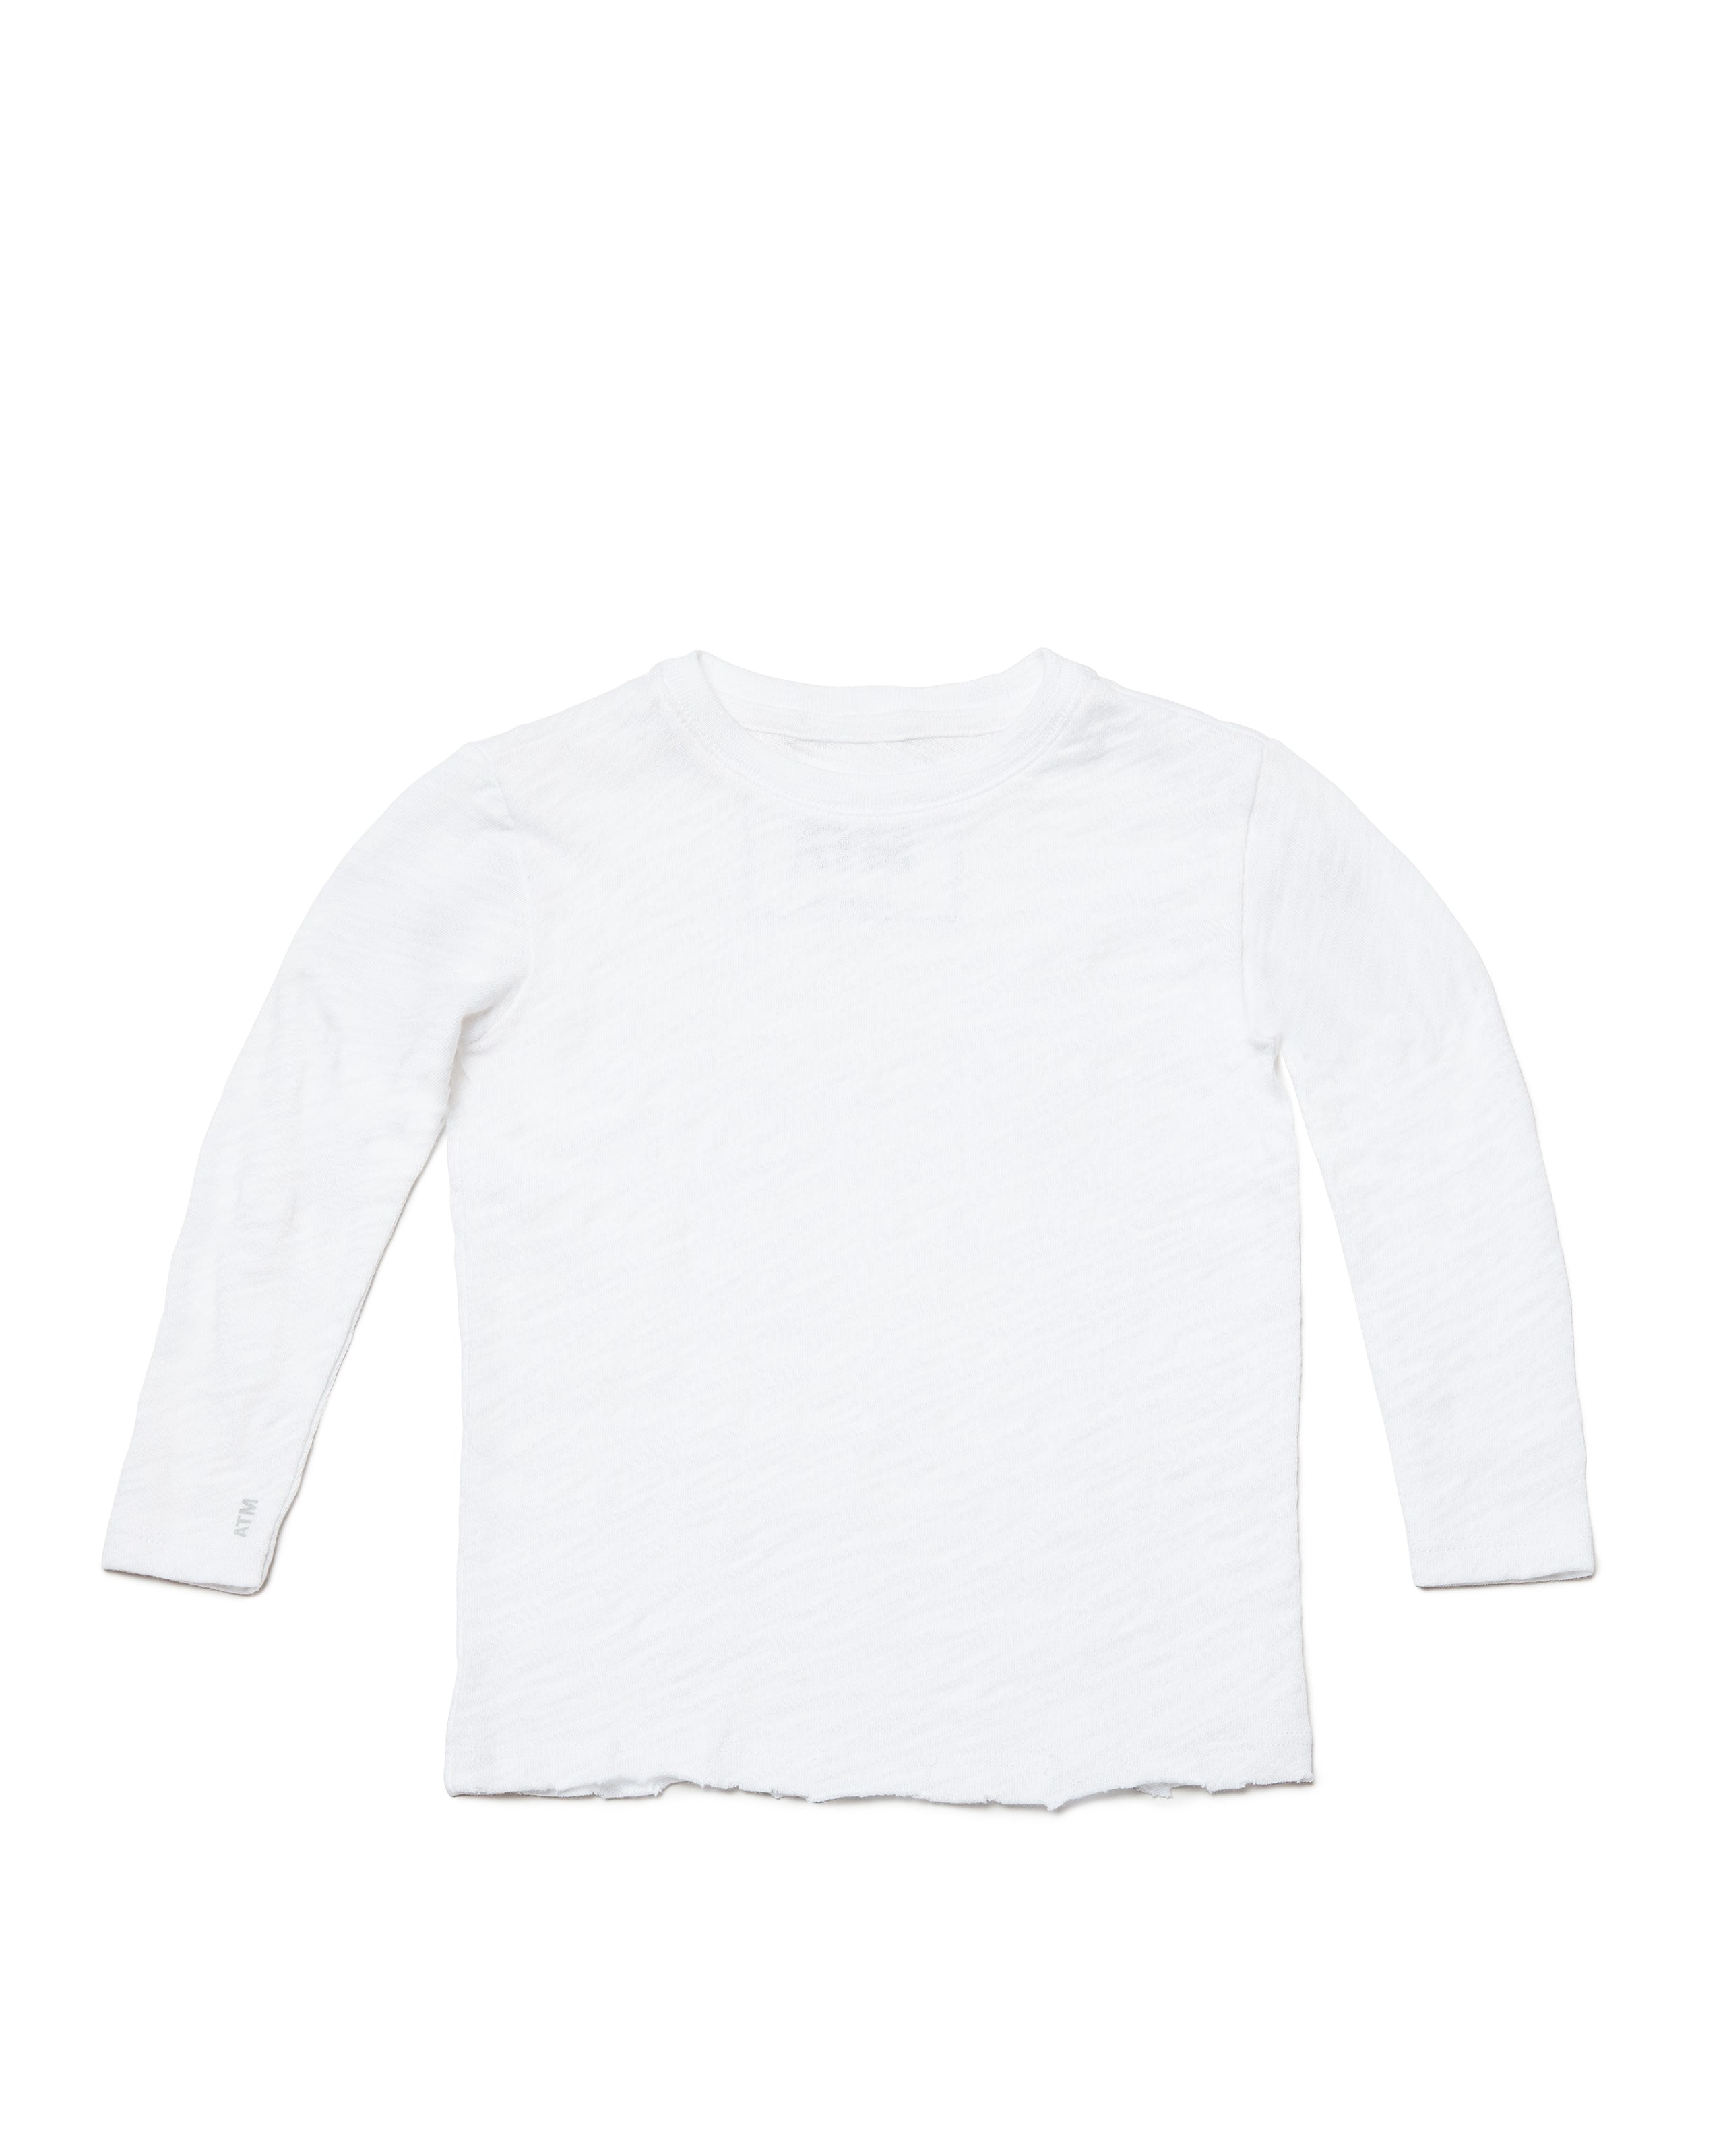 White Kids Slub Jersey Long Sleeve Tee - Kid's Cotton Long Sleeve Tee by ATM Anthony Thomas Melillo